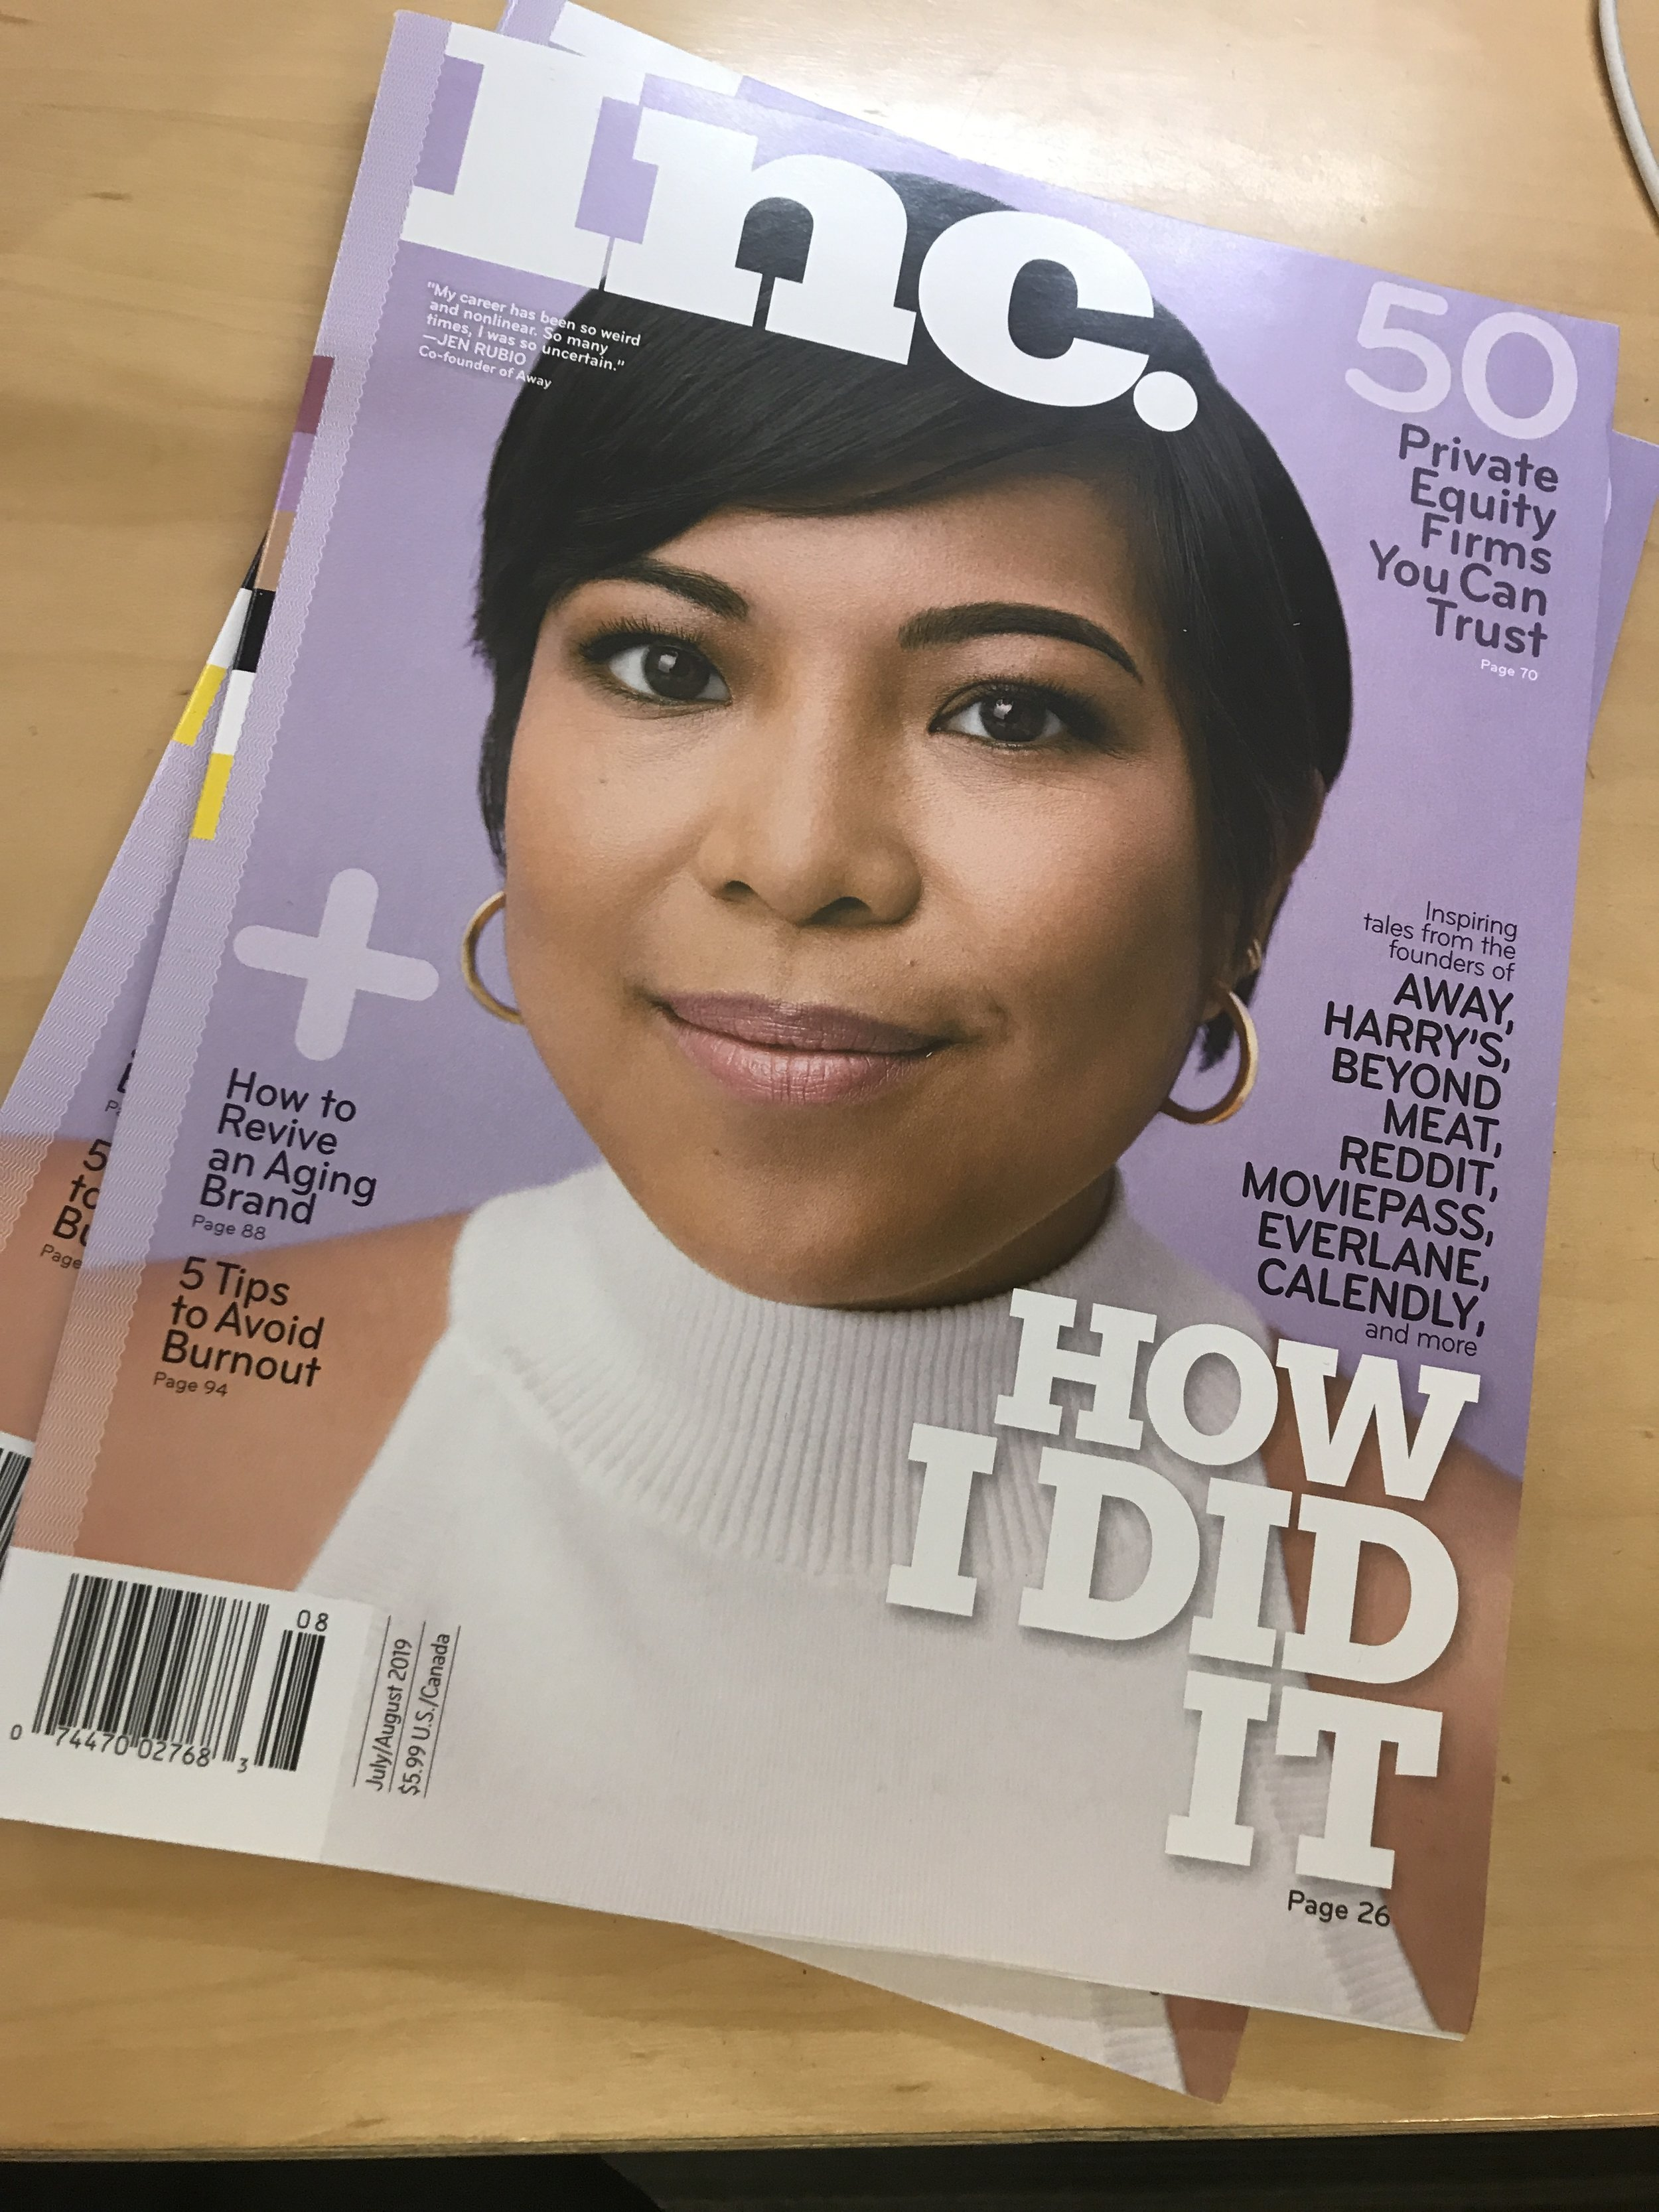 The July/August issue of Inc. magazine, featuring Jen Rubio, co-founder and CEO of Away.